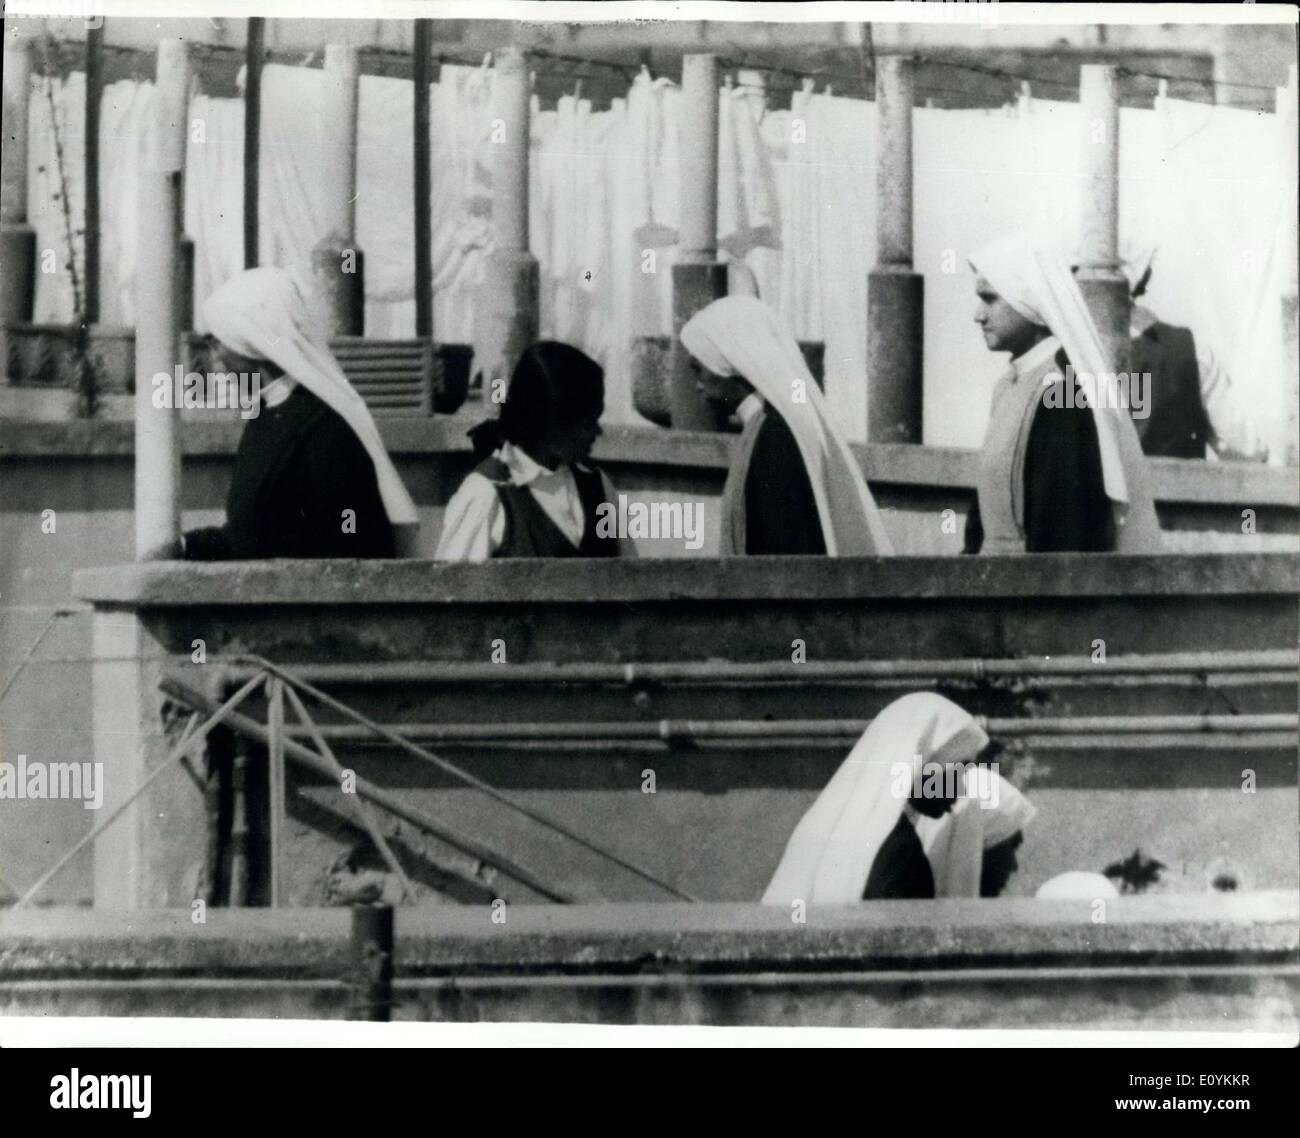 Aug. 27, 1970 - Vatican Denies''Trade'' in Nuns: The Vatican has denied that there was any ''trade'' involved in recruiting Indian girls for Roman Catholic convents in Europe and Britain which were short of nuns.But the Vatican acknowledged that there had been some draw-backs in the recruiting system,and there may have been irregularities in ''limited cases''. Photo shows This picture, taken on Tuesday.shows Indian nuns at a Catholic institution near the Vatican. - Stock Image